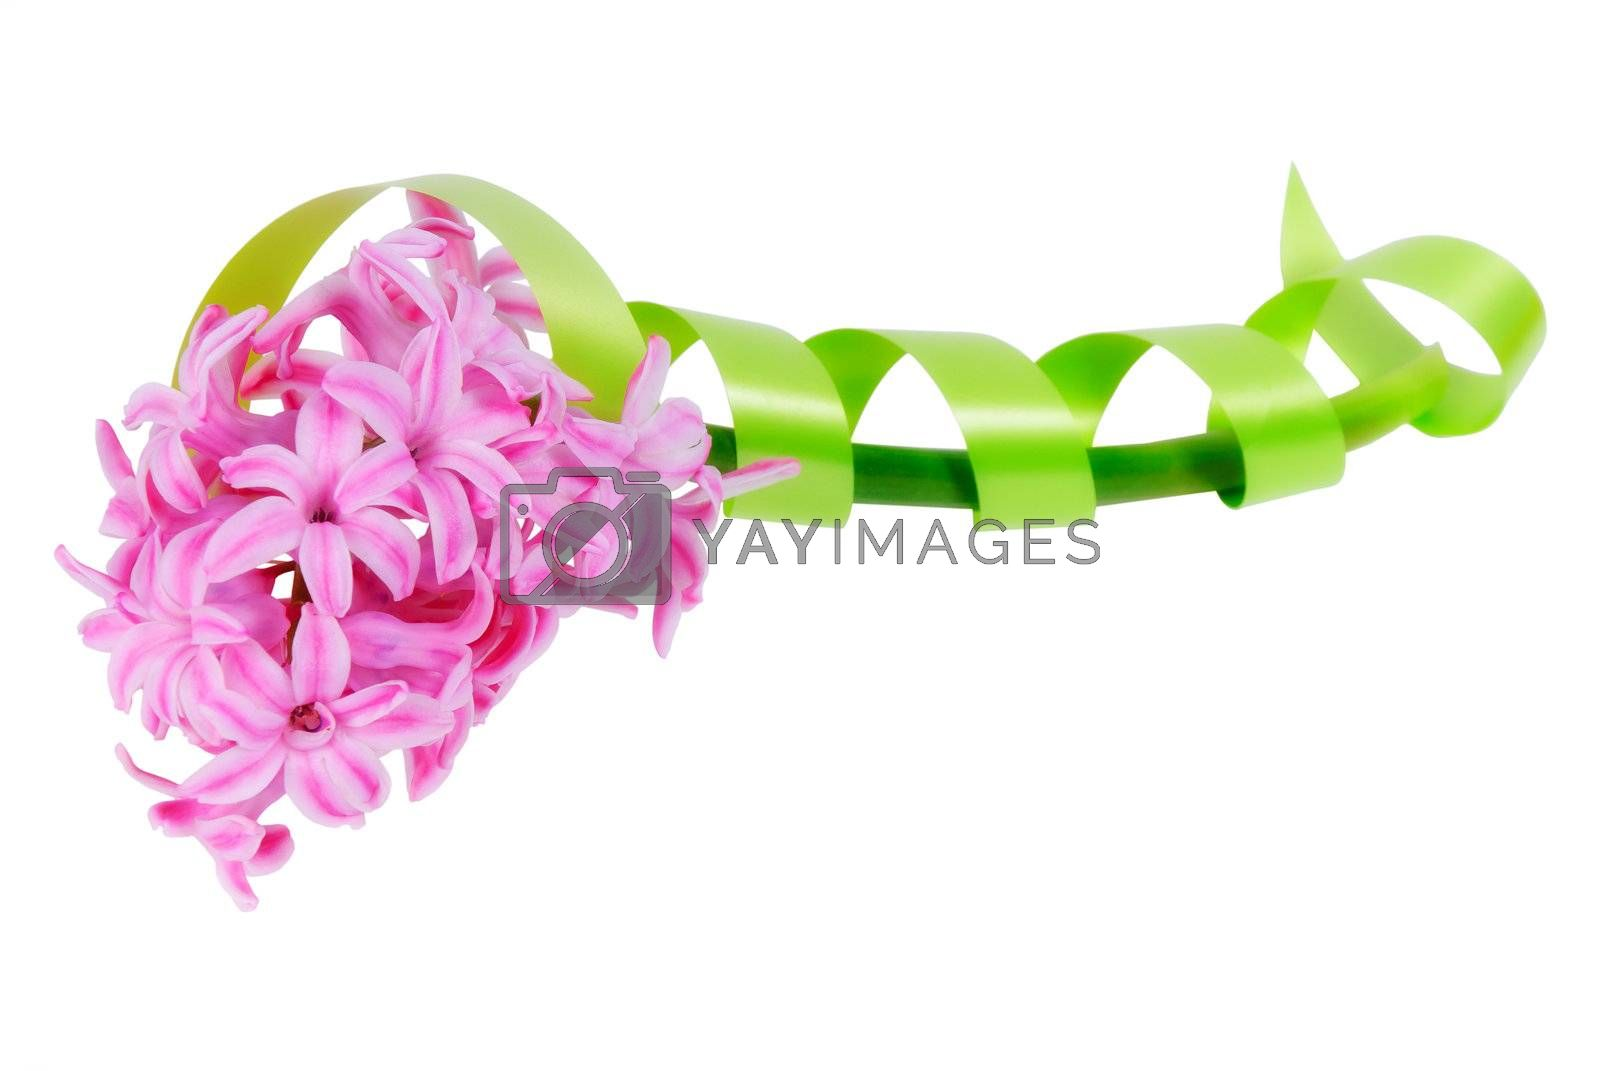 Beautiful hyacinthus flower with a green tape, isolated on white background